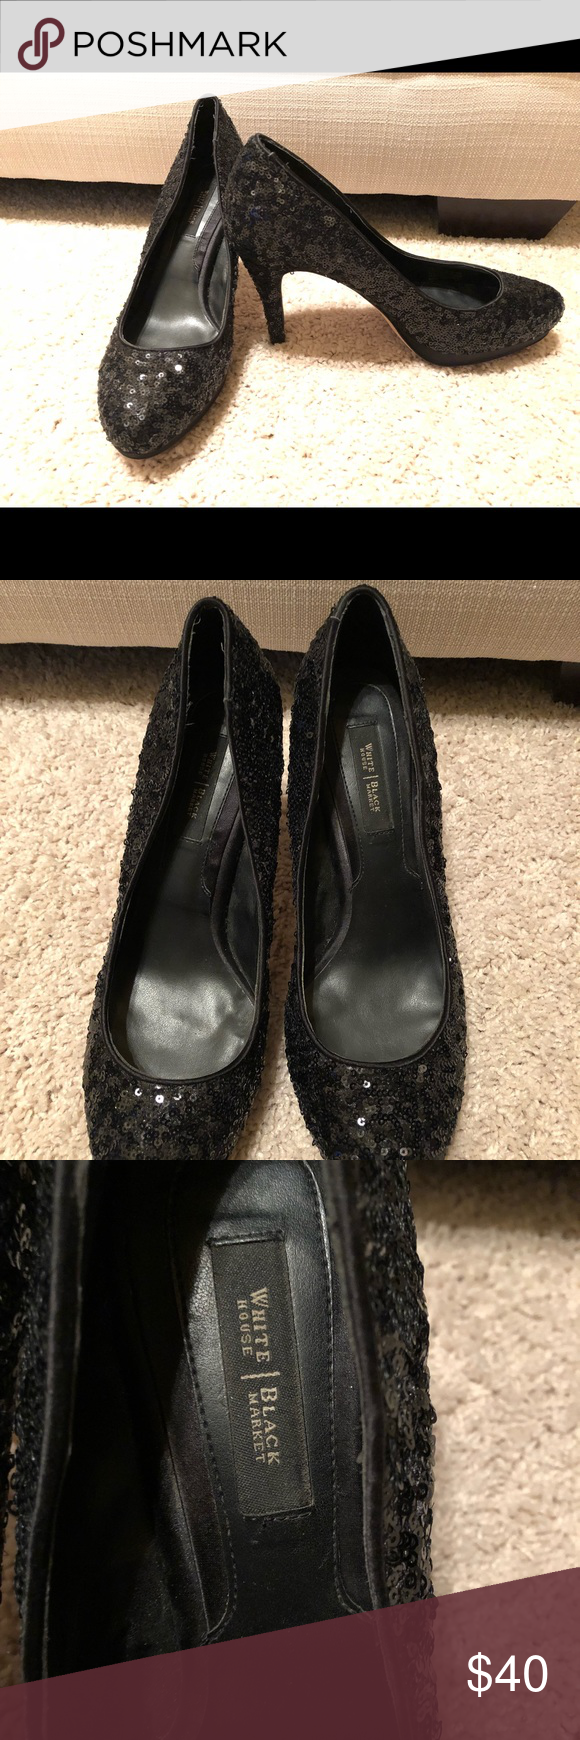 902380ab2e White House Black Market Full Sequin Pumps -Sz 8 Fun dressy pumps covered  from heel